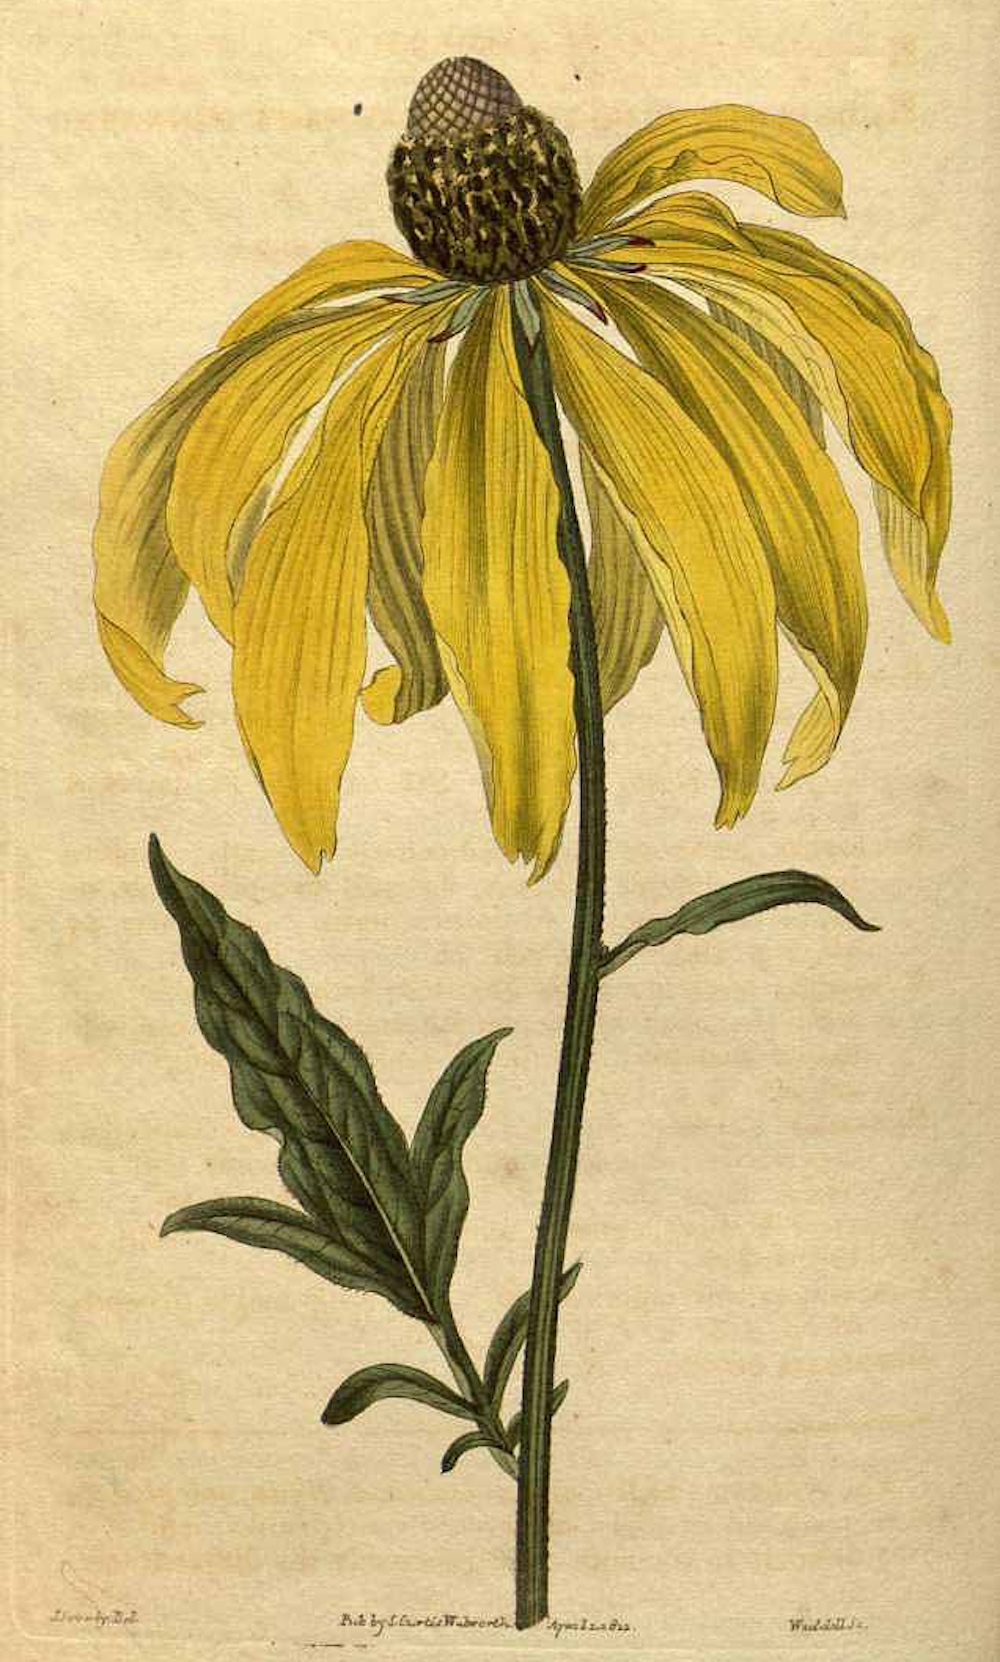 Gray-headed coneflower (Rudbeckia pinnata) illustration by James Sowerby circa 1822.